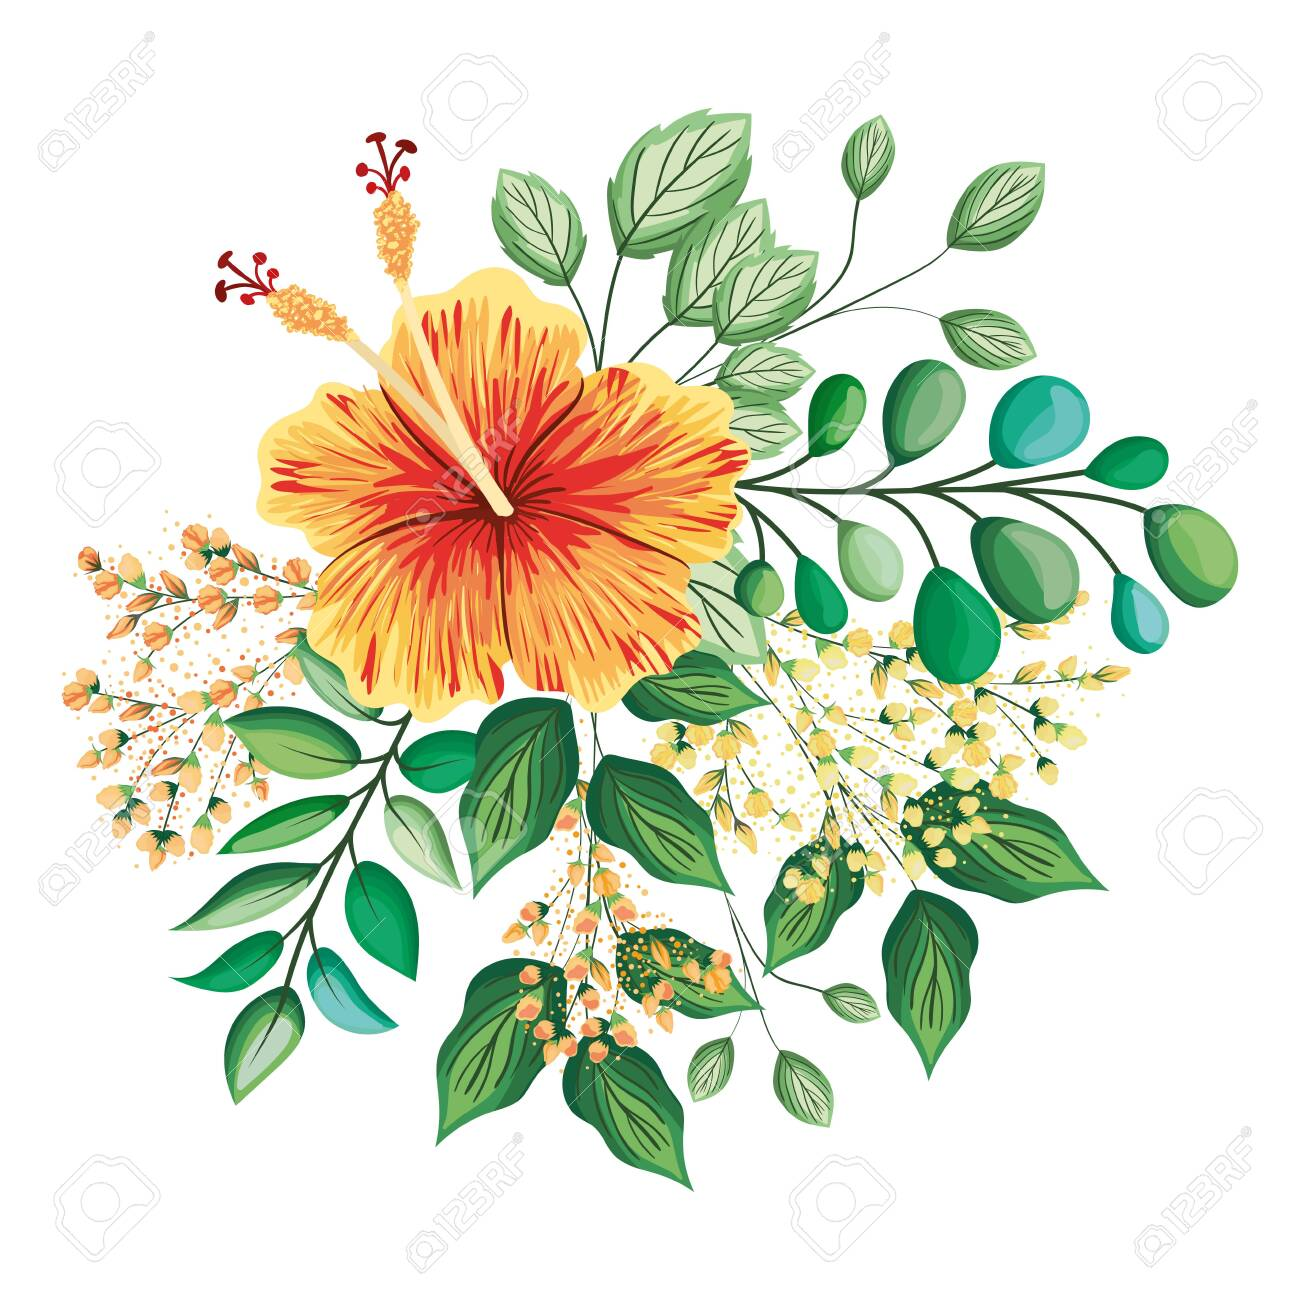 orange hawaiian flower with buds and leaves painting design, natural floral nature plant ornament garden decoration and botany theme Vector illustration - 153820041